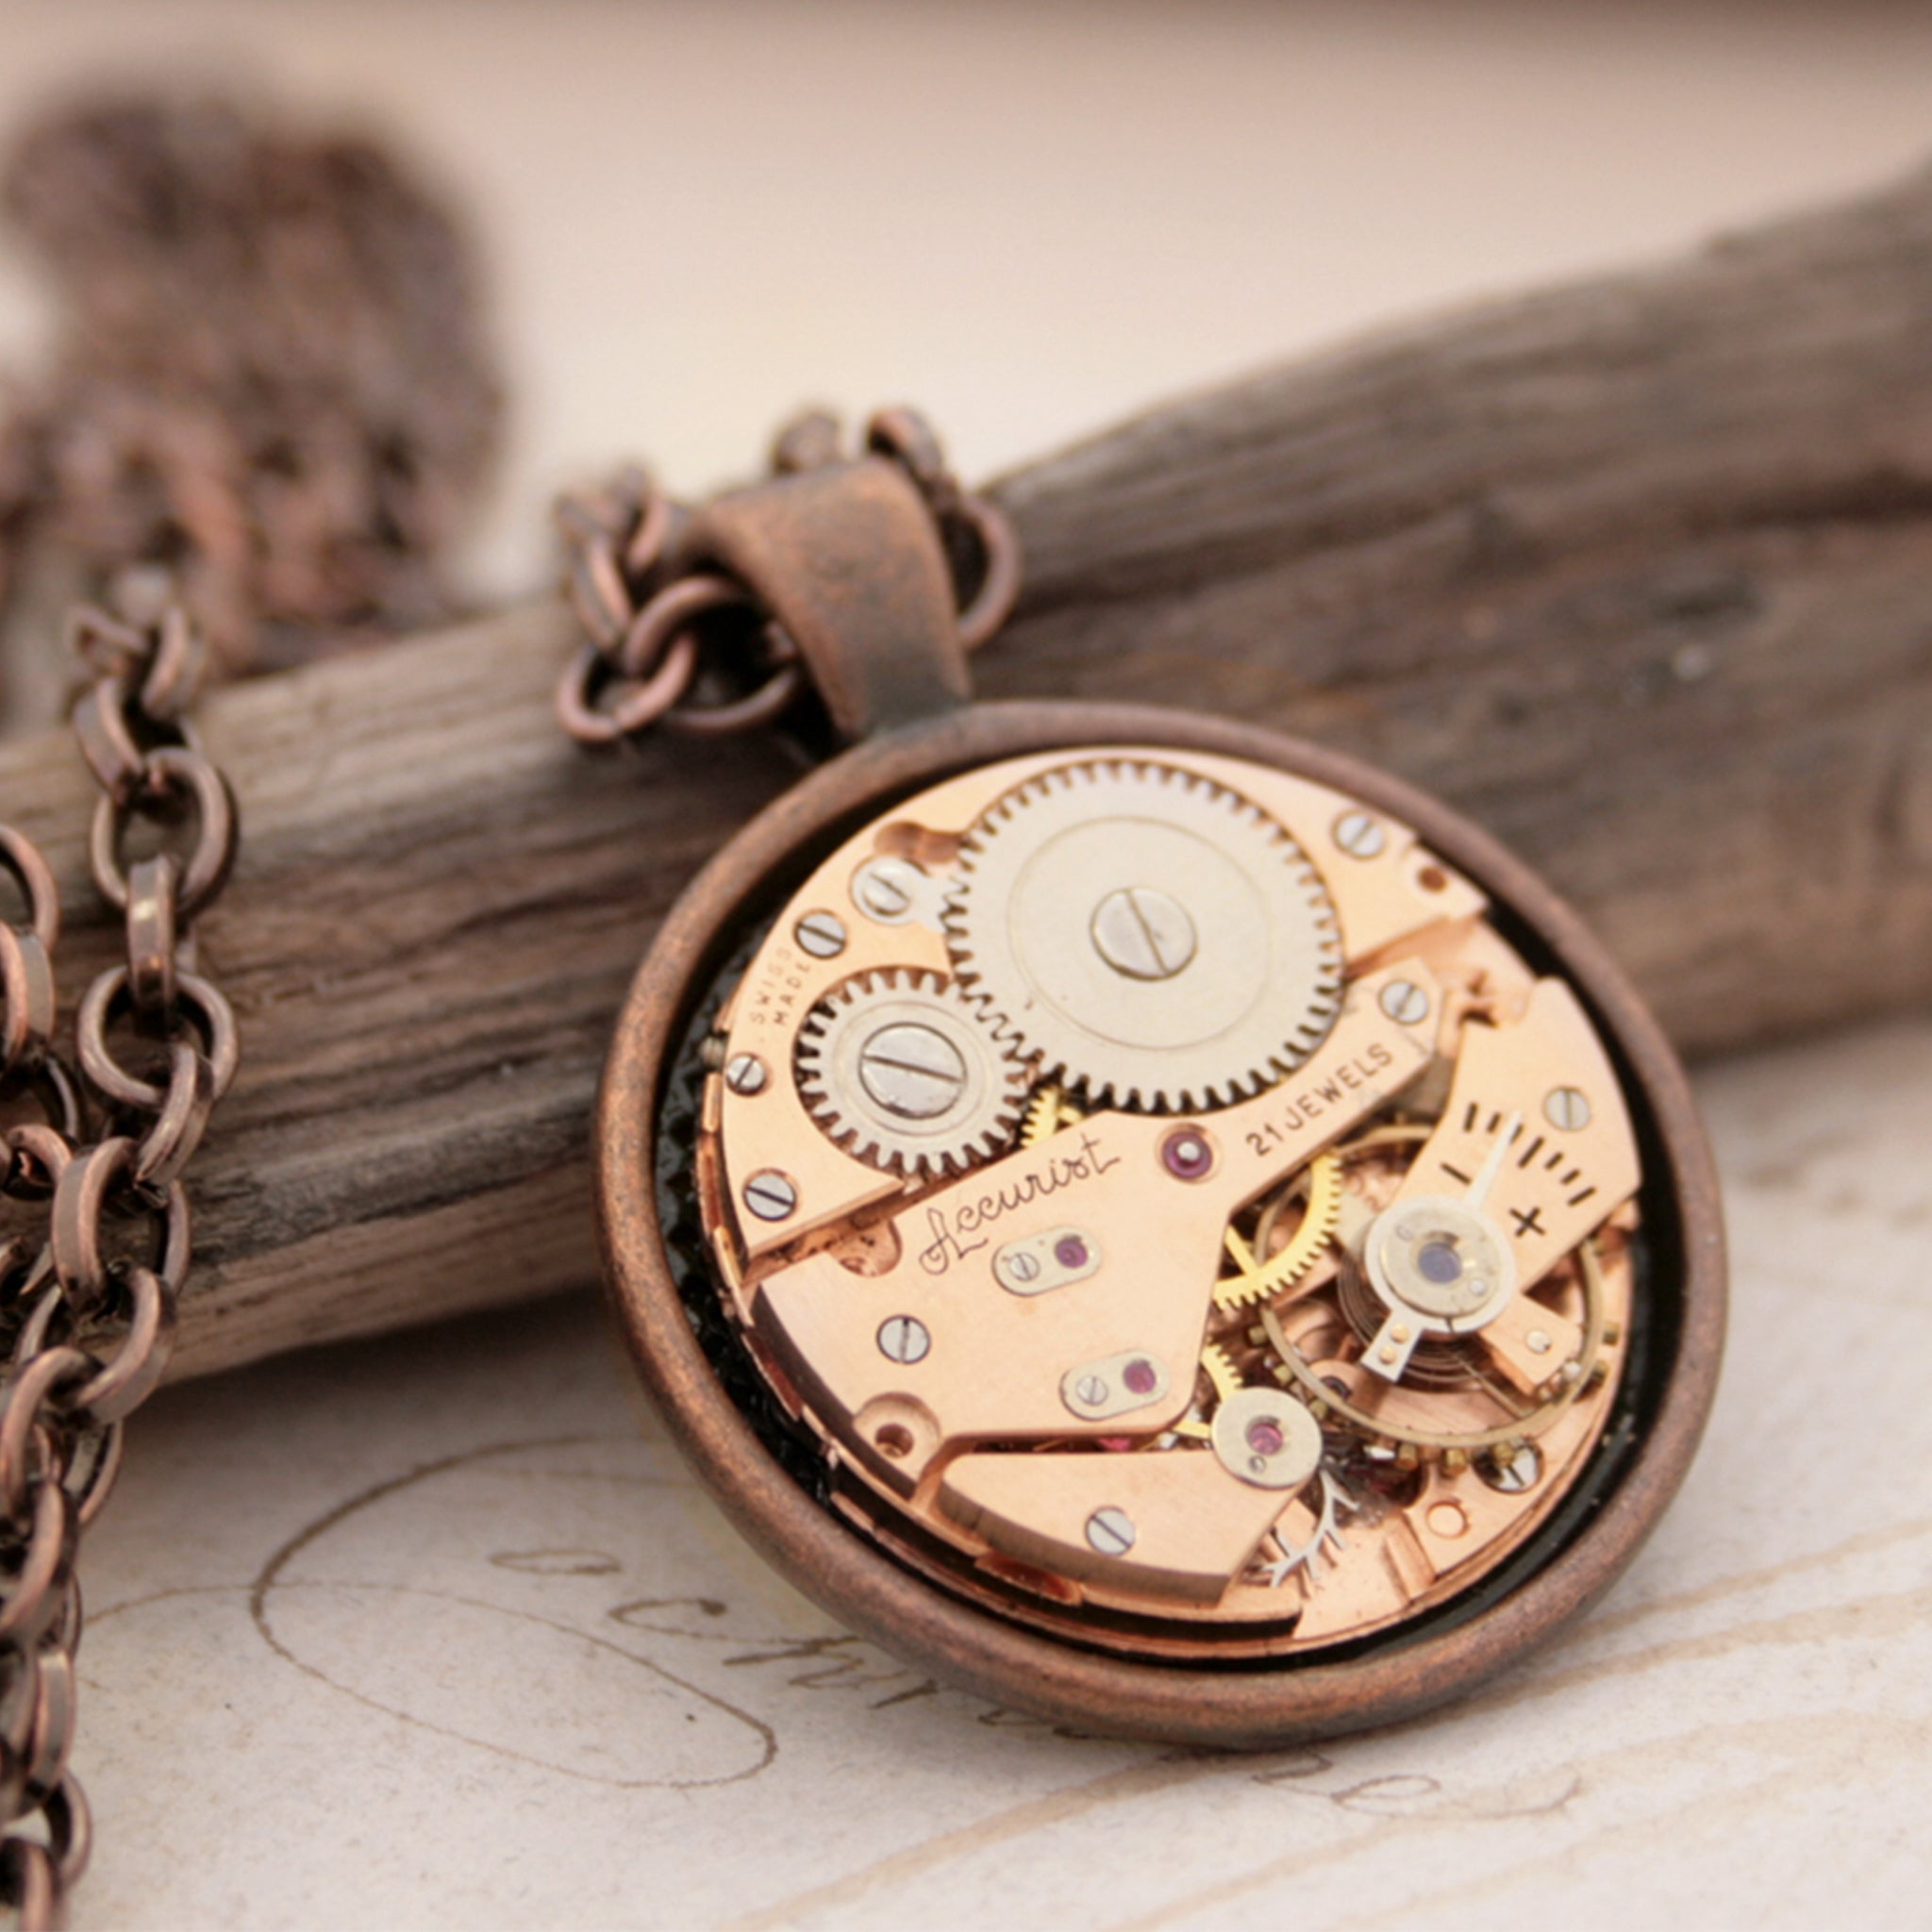 Copper Pendant Necklace in Steampunk Style with Watch Mechanism